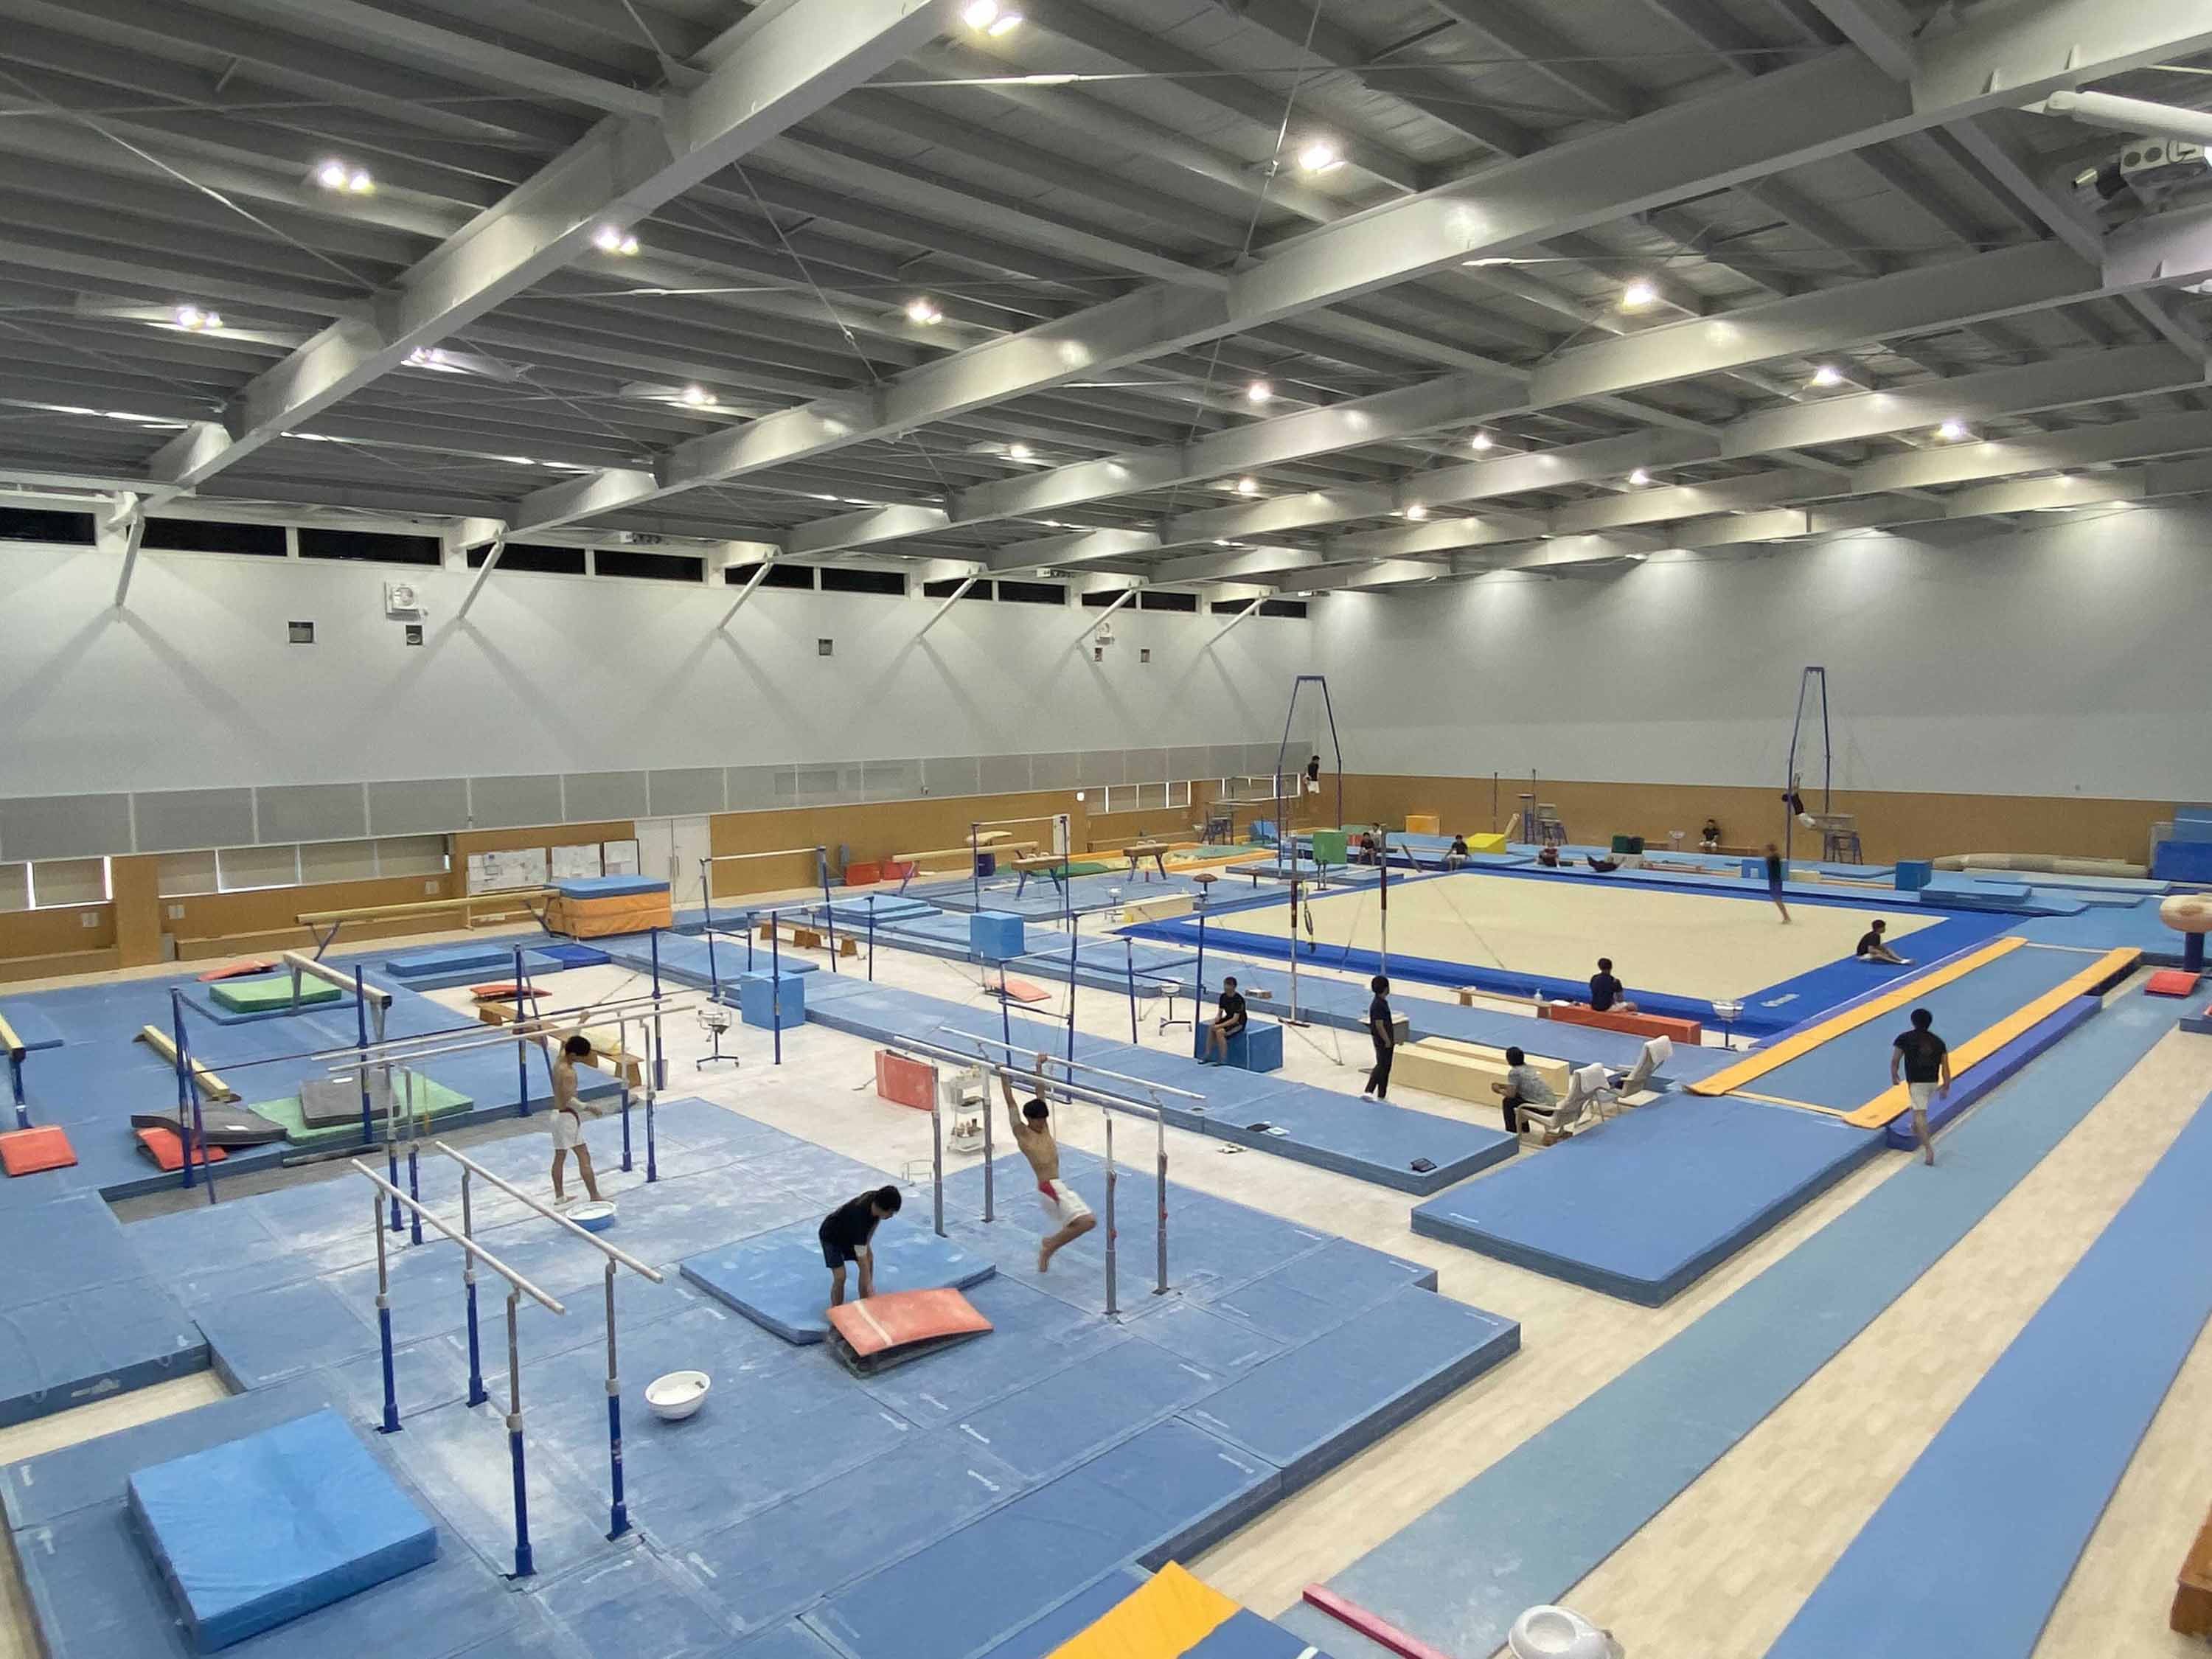 The Ogawa Gymnastics Arena is pictured at Juntendo University, where Team USA gymnast Simone Biles secretly trained over several days last week to get back into form to compete on the balance beam. She won a bronze medal in the event on Tuesday - her seventh Olympic medal.